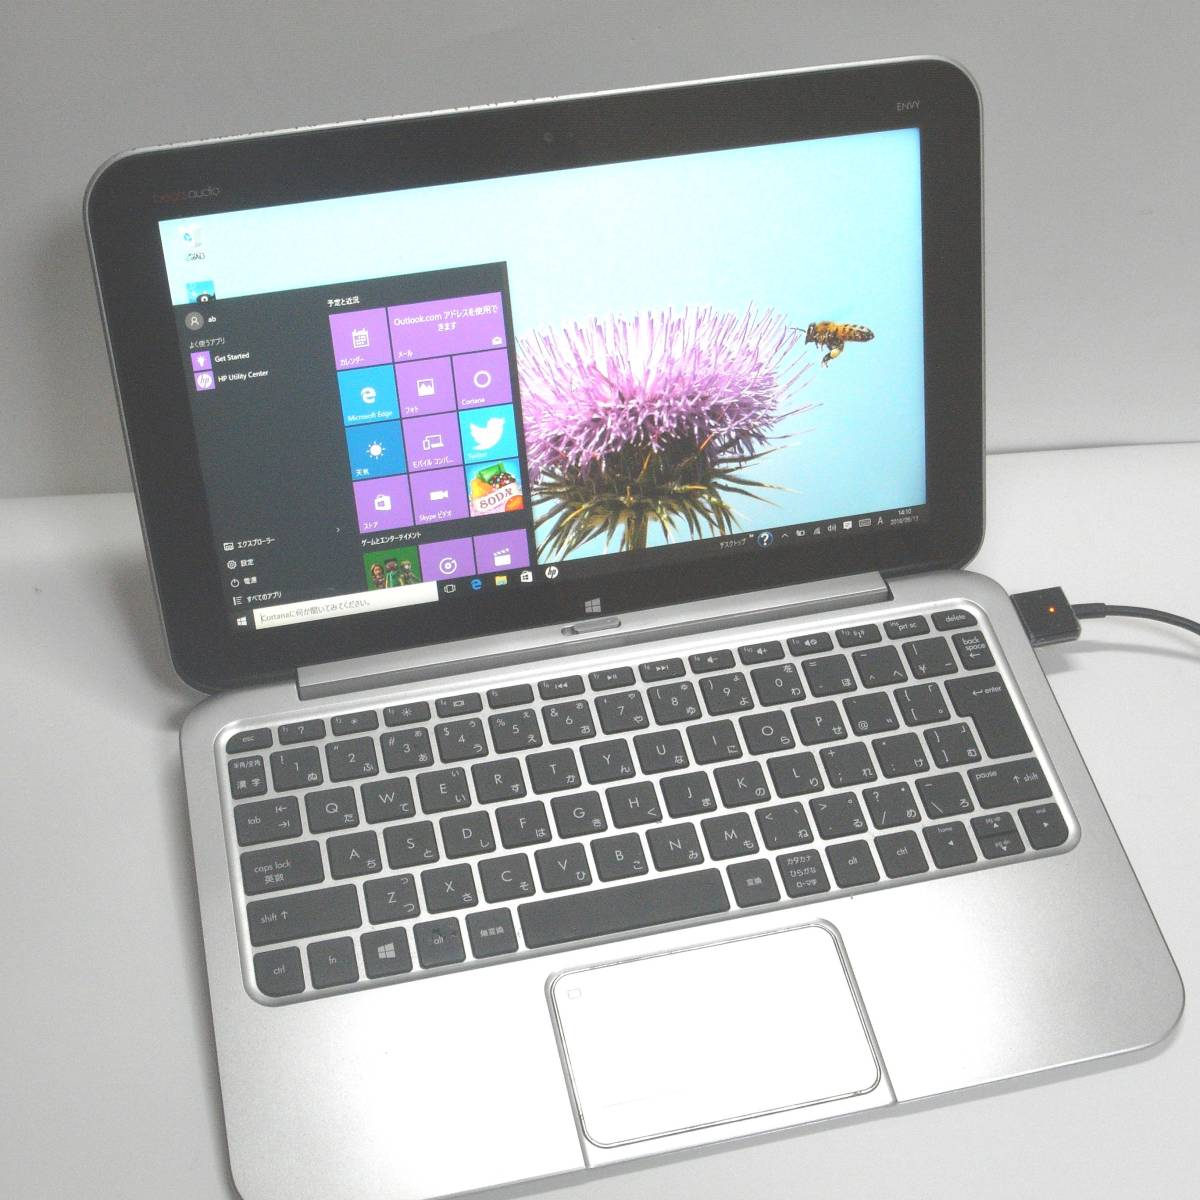 HP Envy TPN-P104 送料無料 タブレットPC+キーボード付き